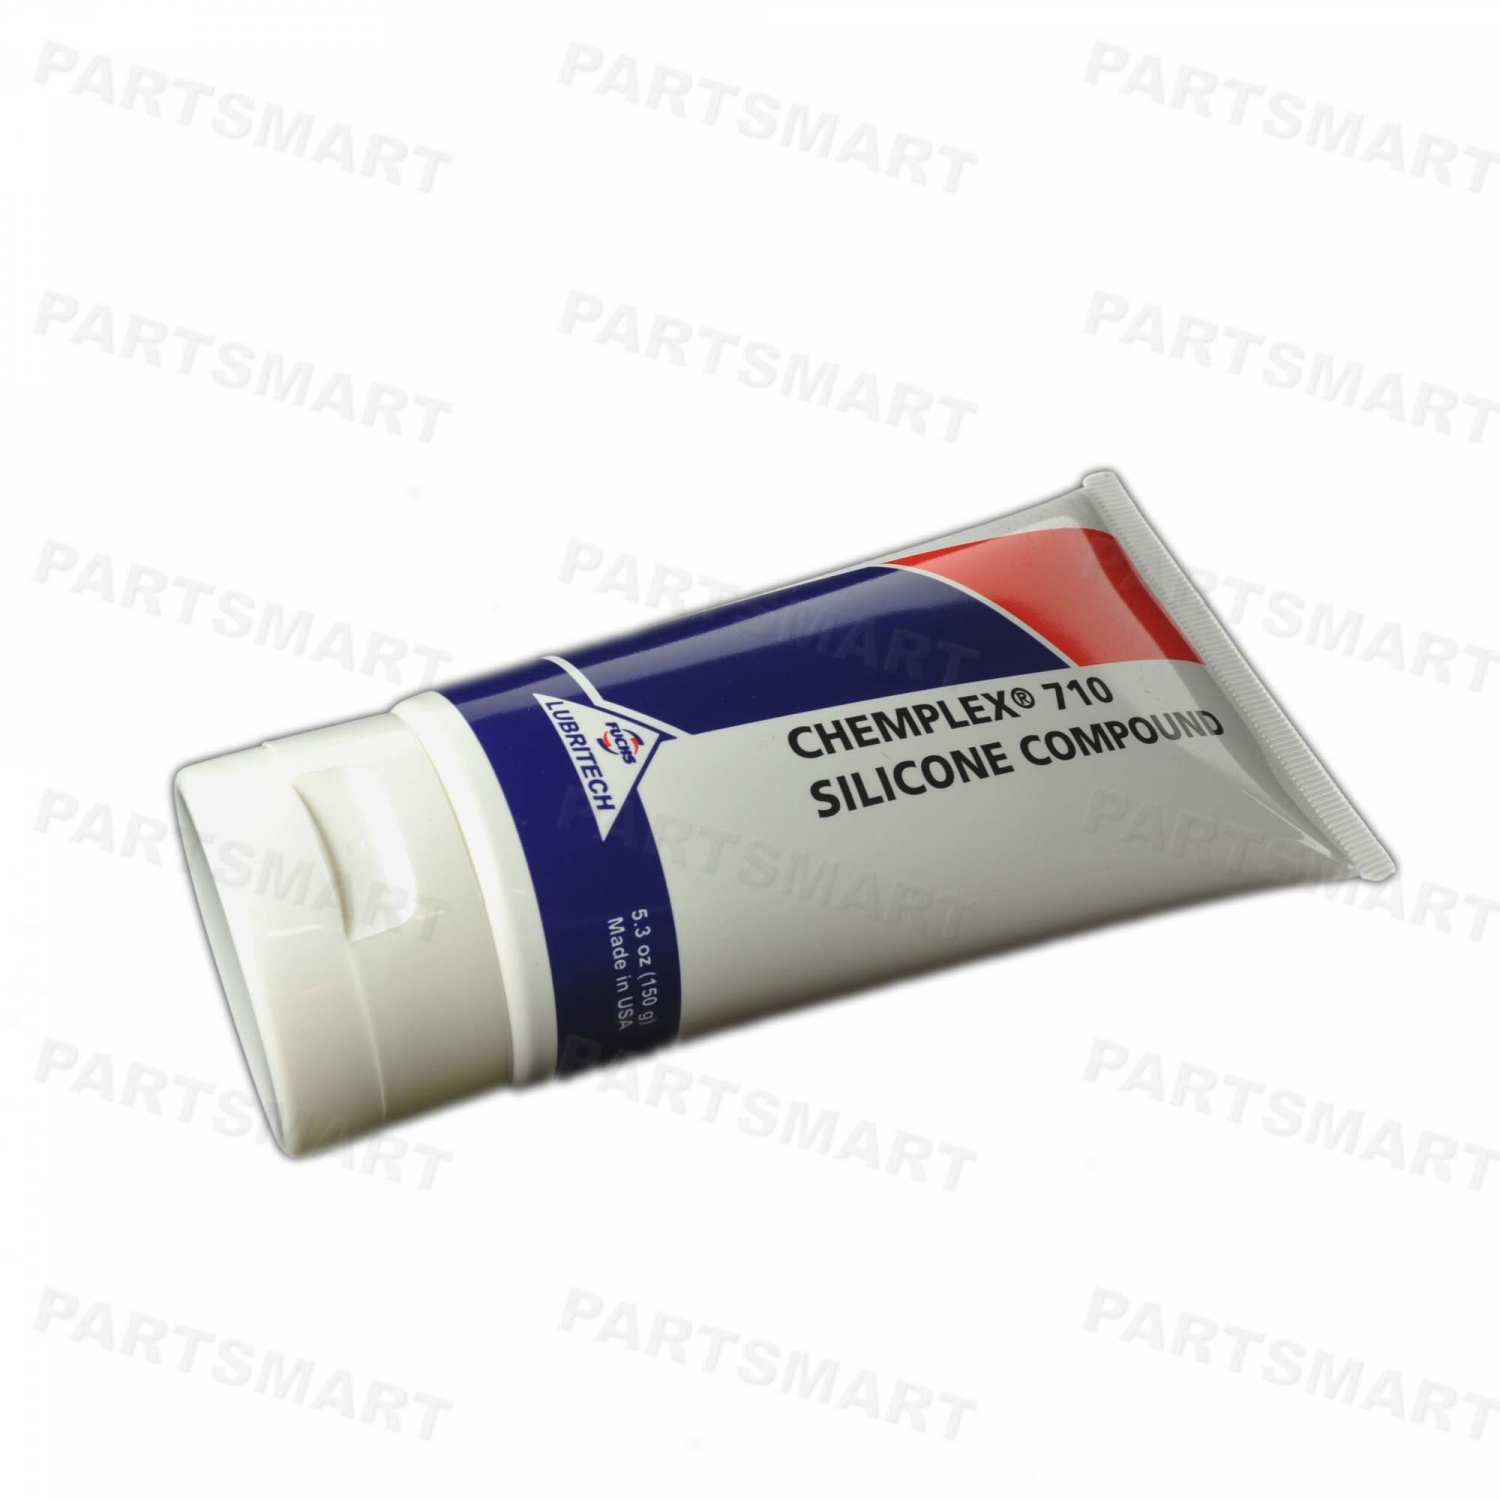 GRS-5.3 Grease for Film Sleeves (5.3 oz) for Others Misc